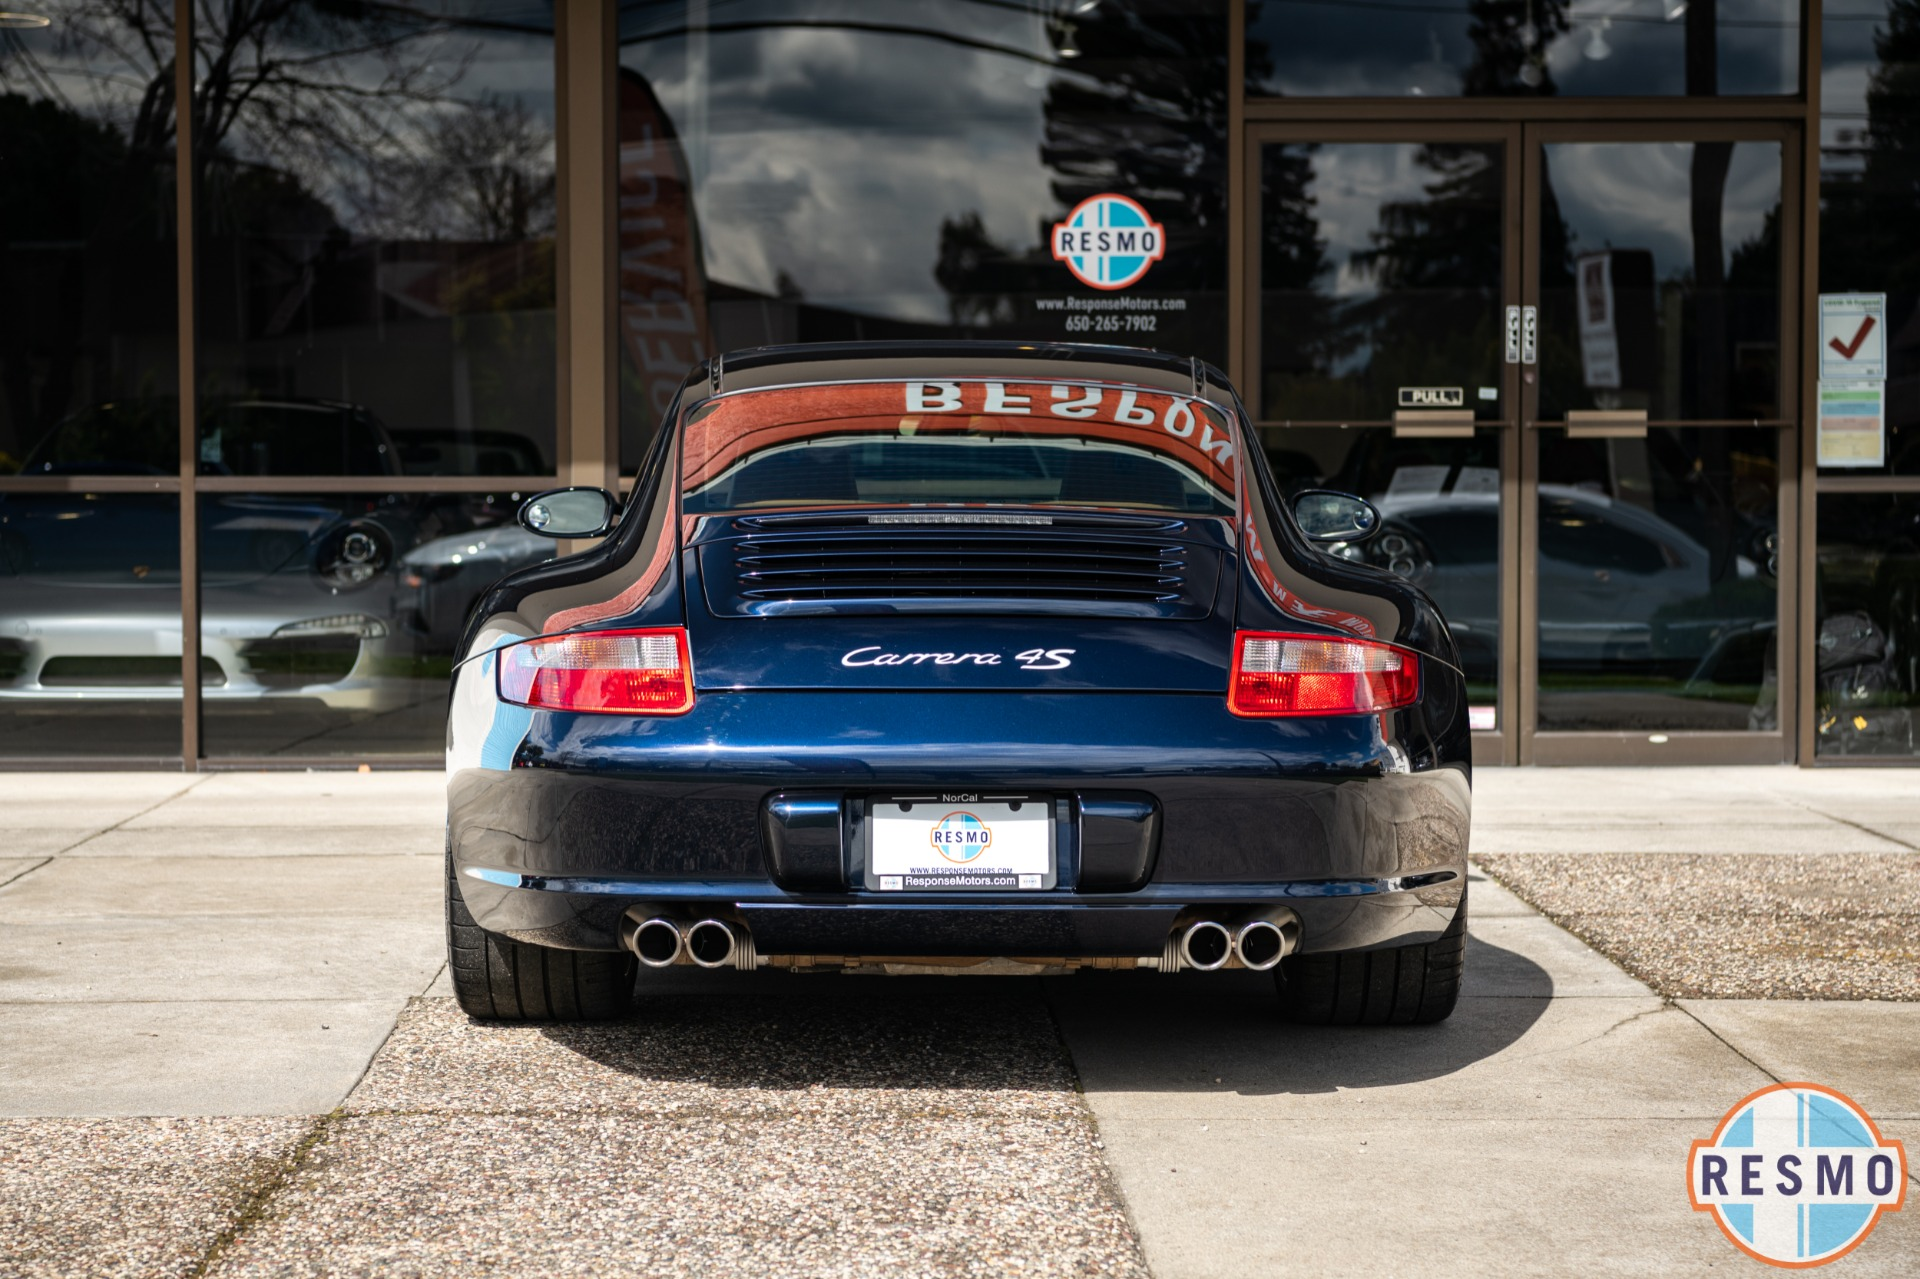 Used 2008 Porsche 911 Carrera 4S Used 2008 Porsche 911 Carrera 4S for sale $41,999 at Response Motors in Mountain View CA 7